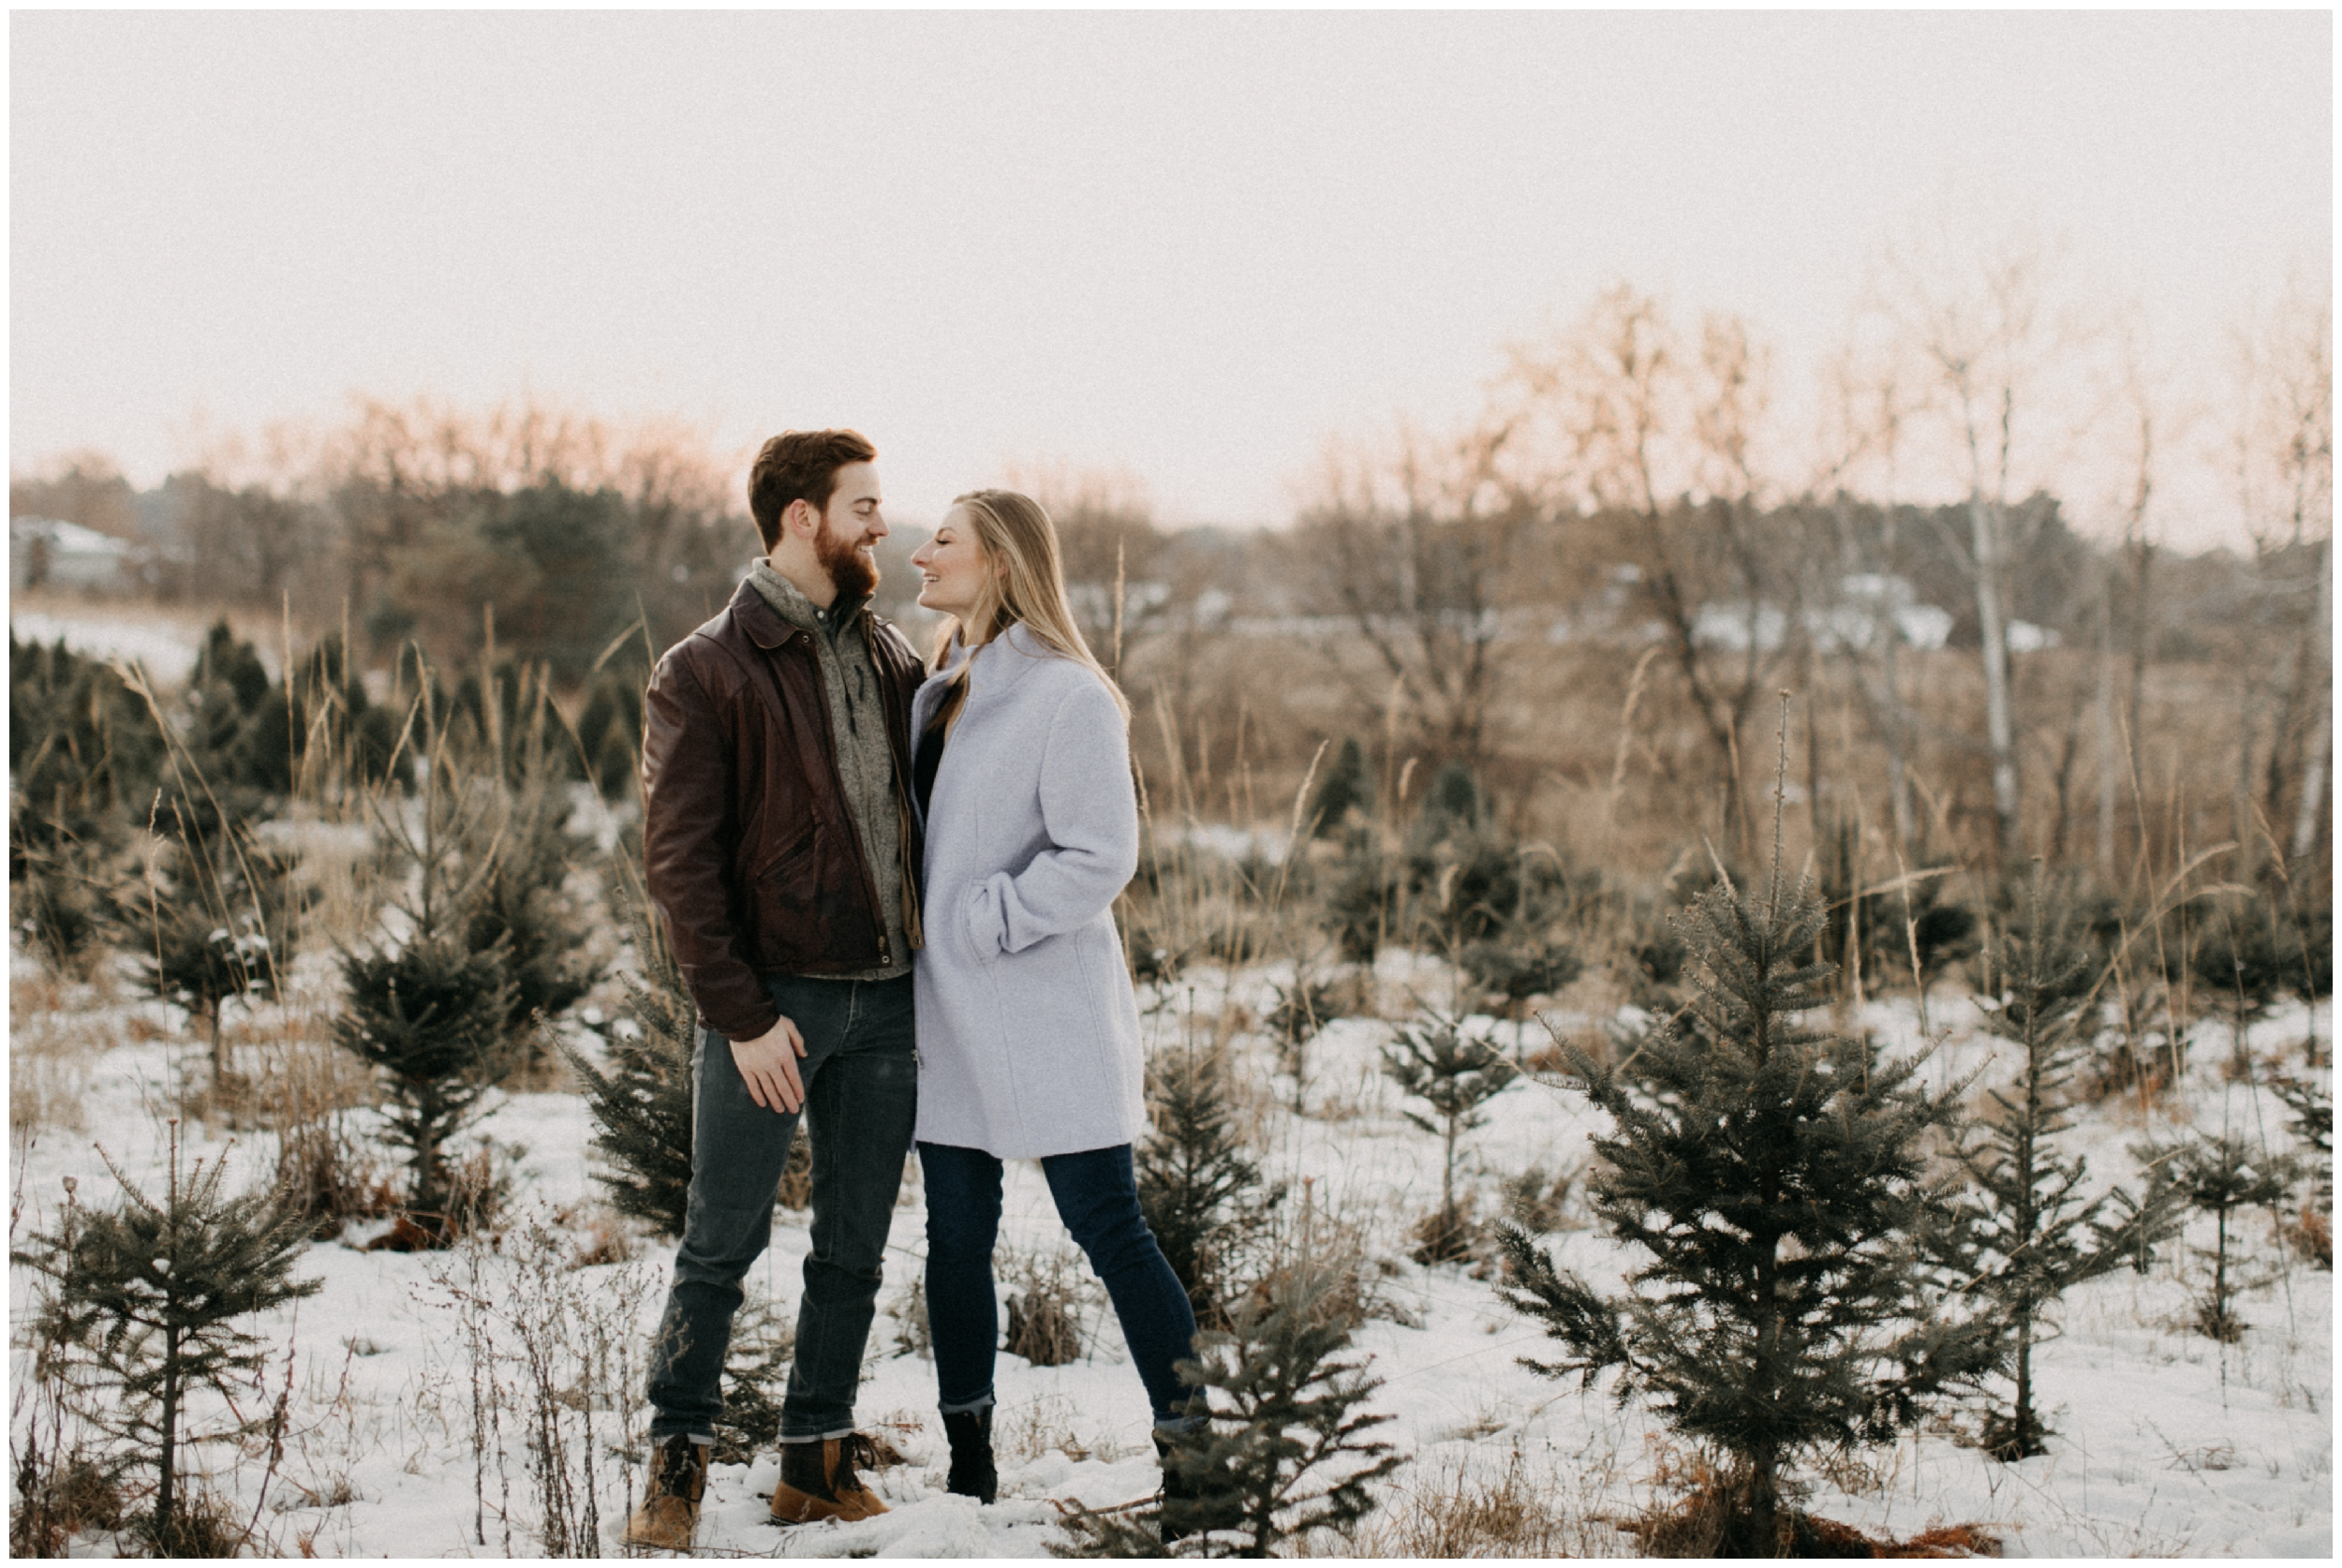 Winter engagement photography at Hansen Tree farm in Minnesota